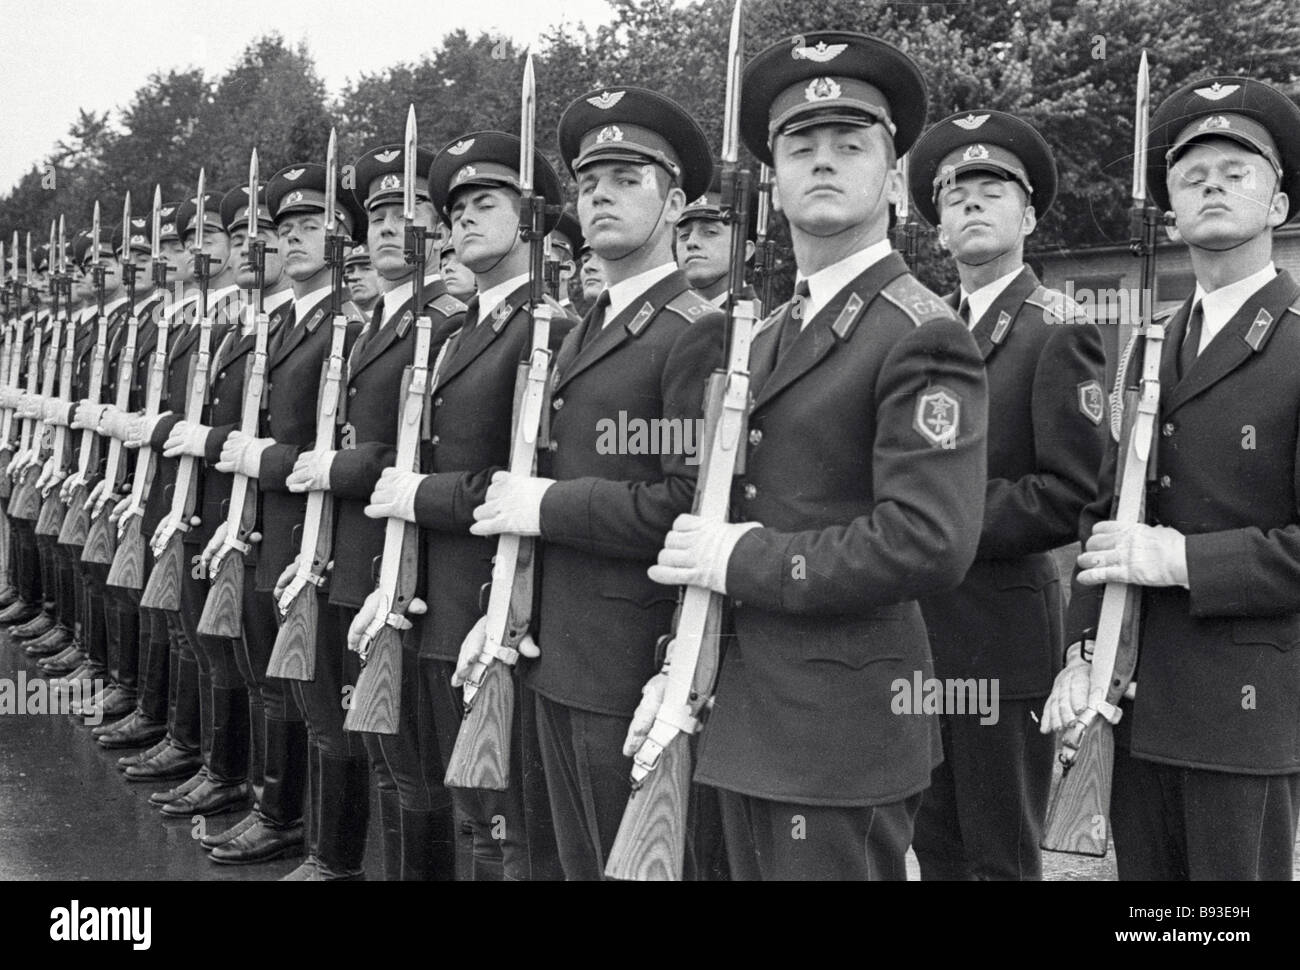 The 1st Guard of Honor Separate Platoon of the Moscow Military District parading - Stock Image